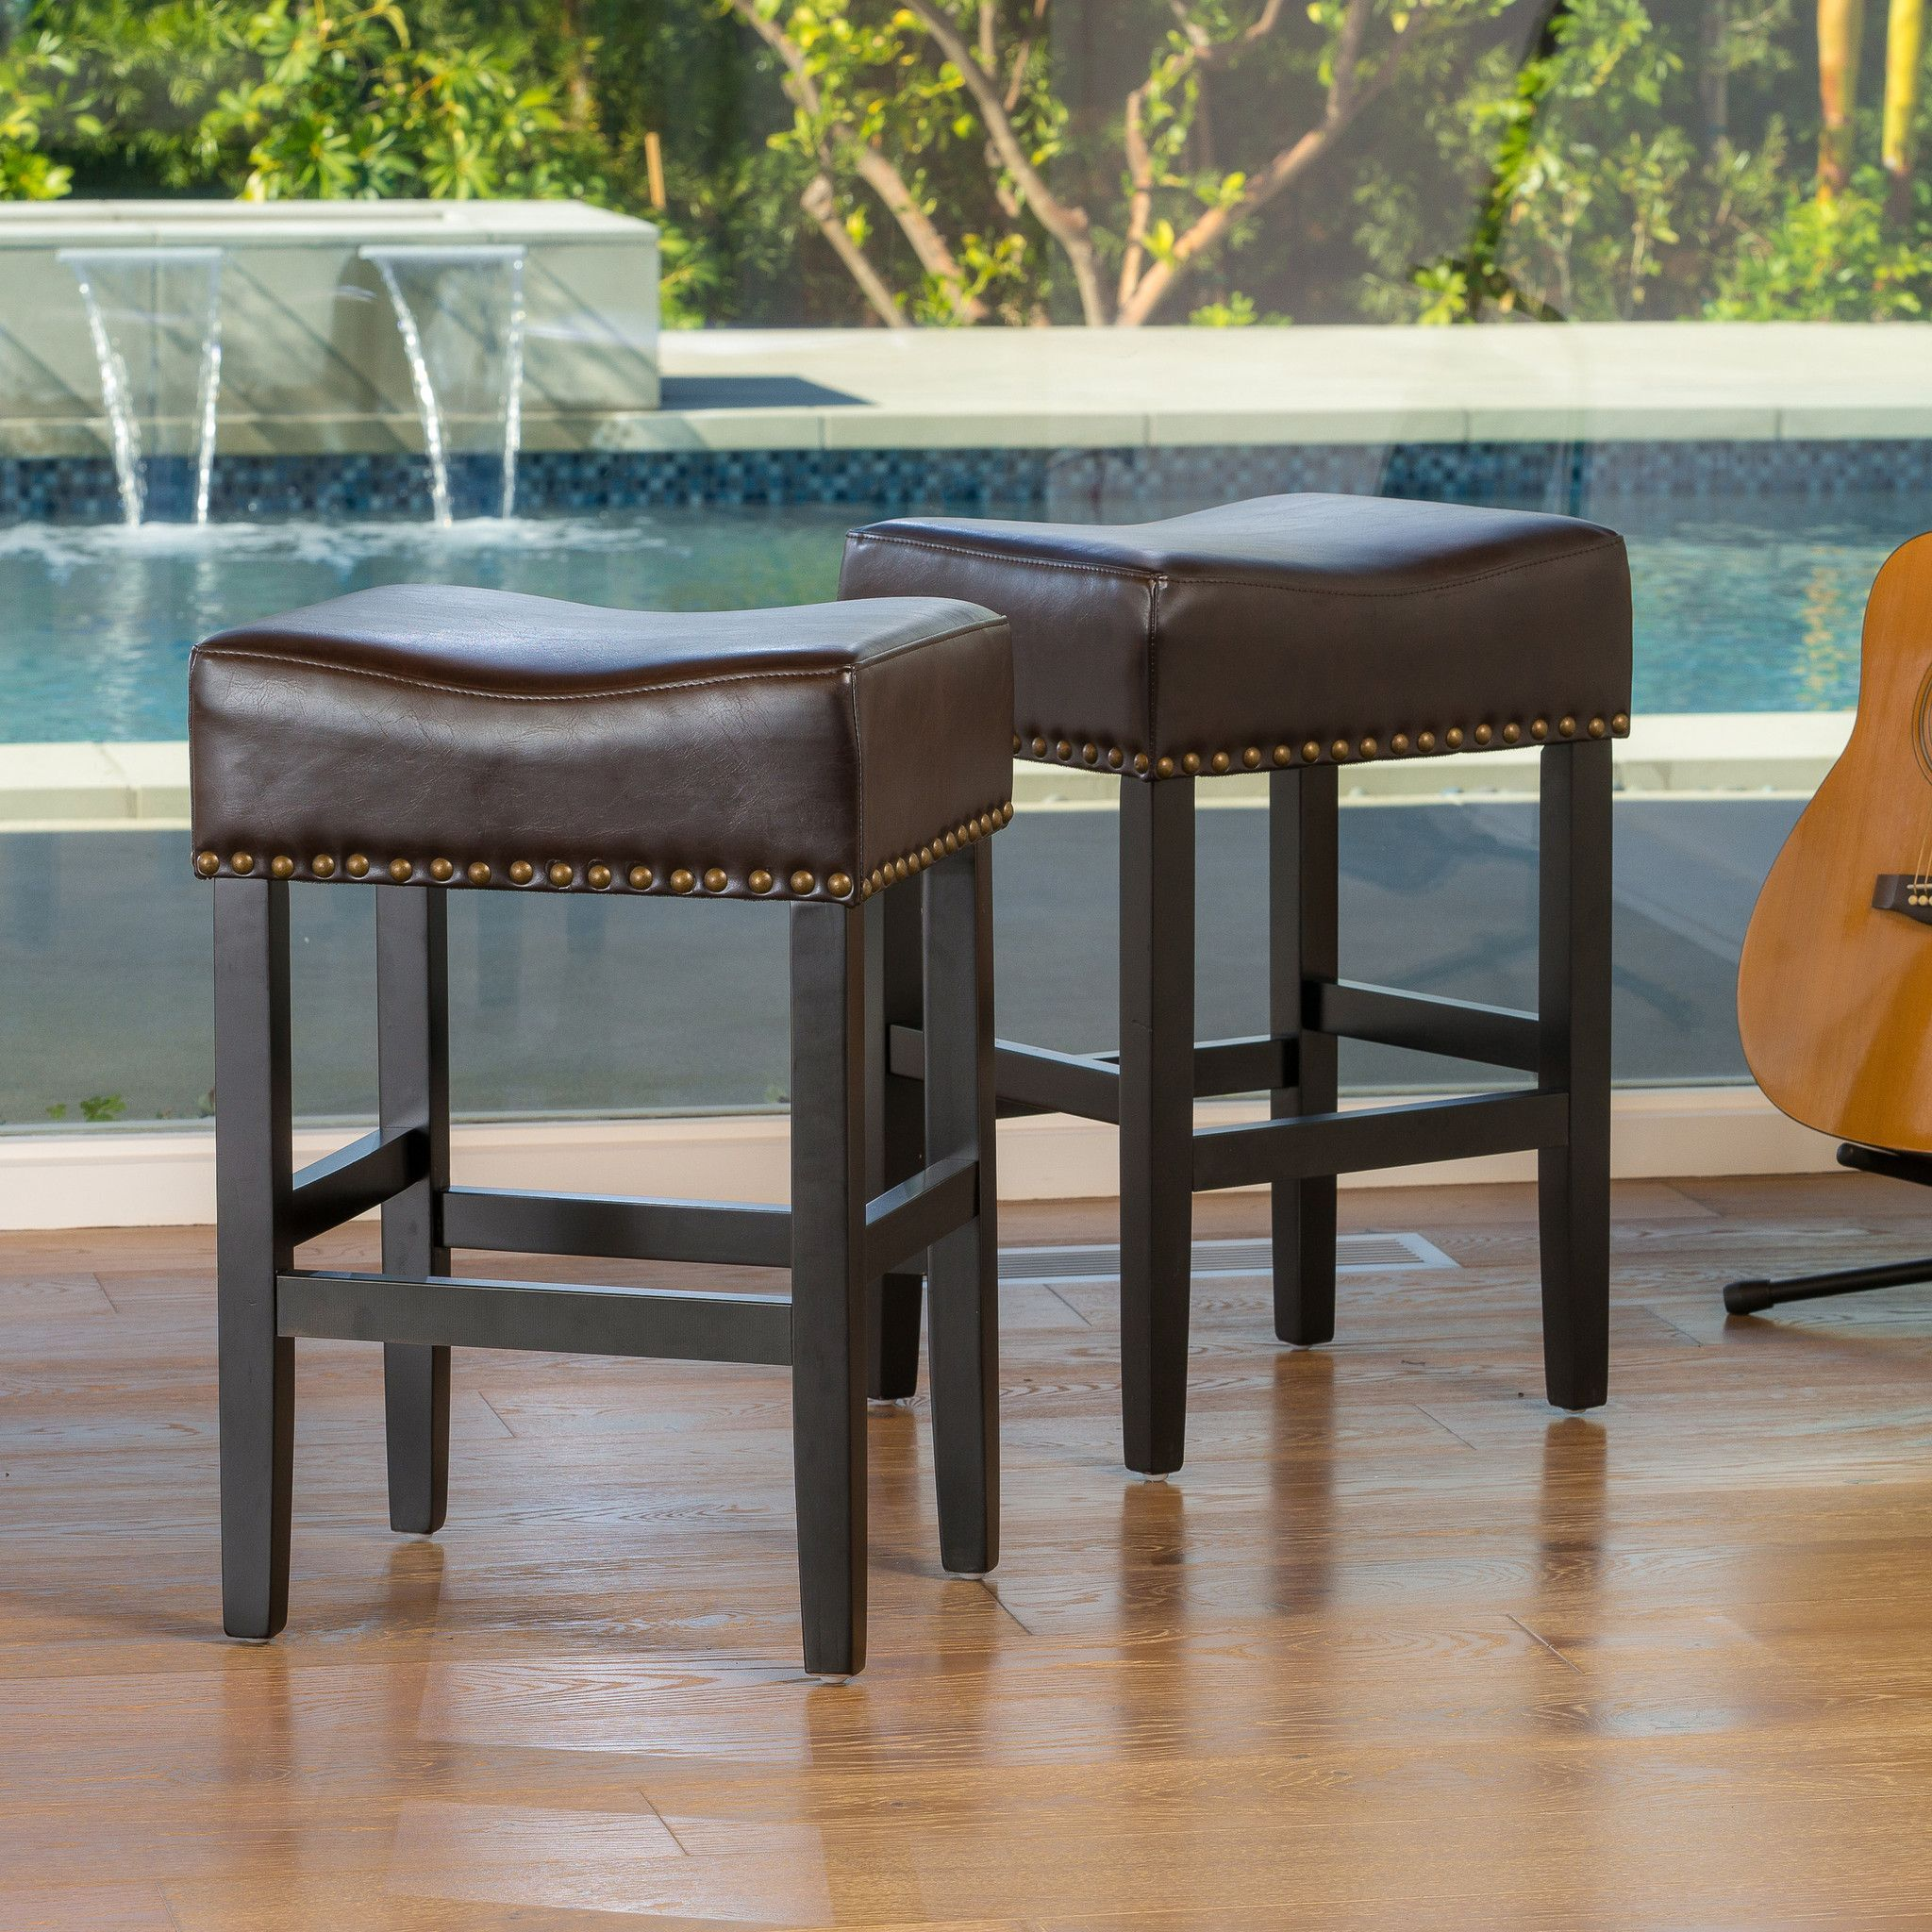 Fantastic Chantal 26 Inch Brown Backless Leather Counter Stool Set Of Bralicious Painted Fabric Chair Ideas Braliciousco